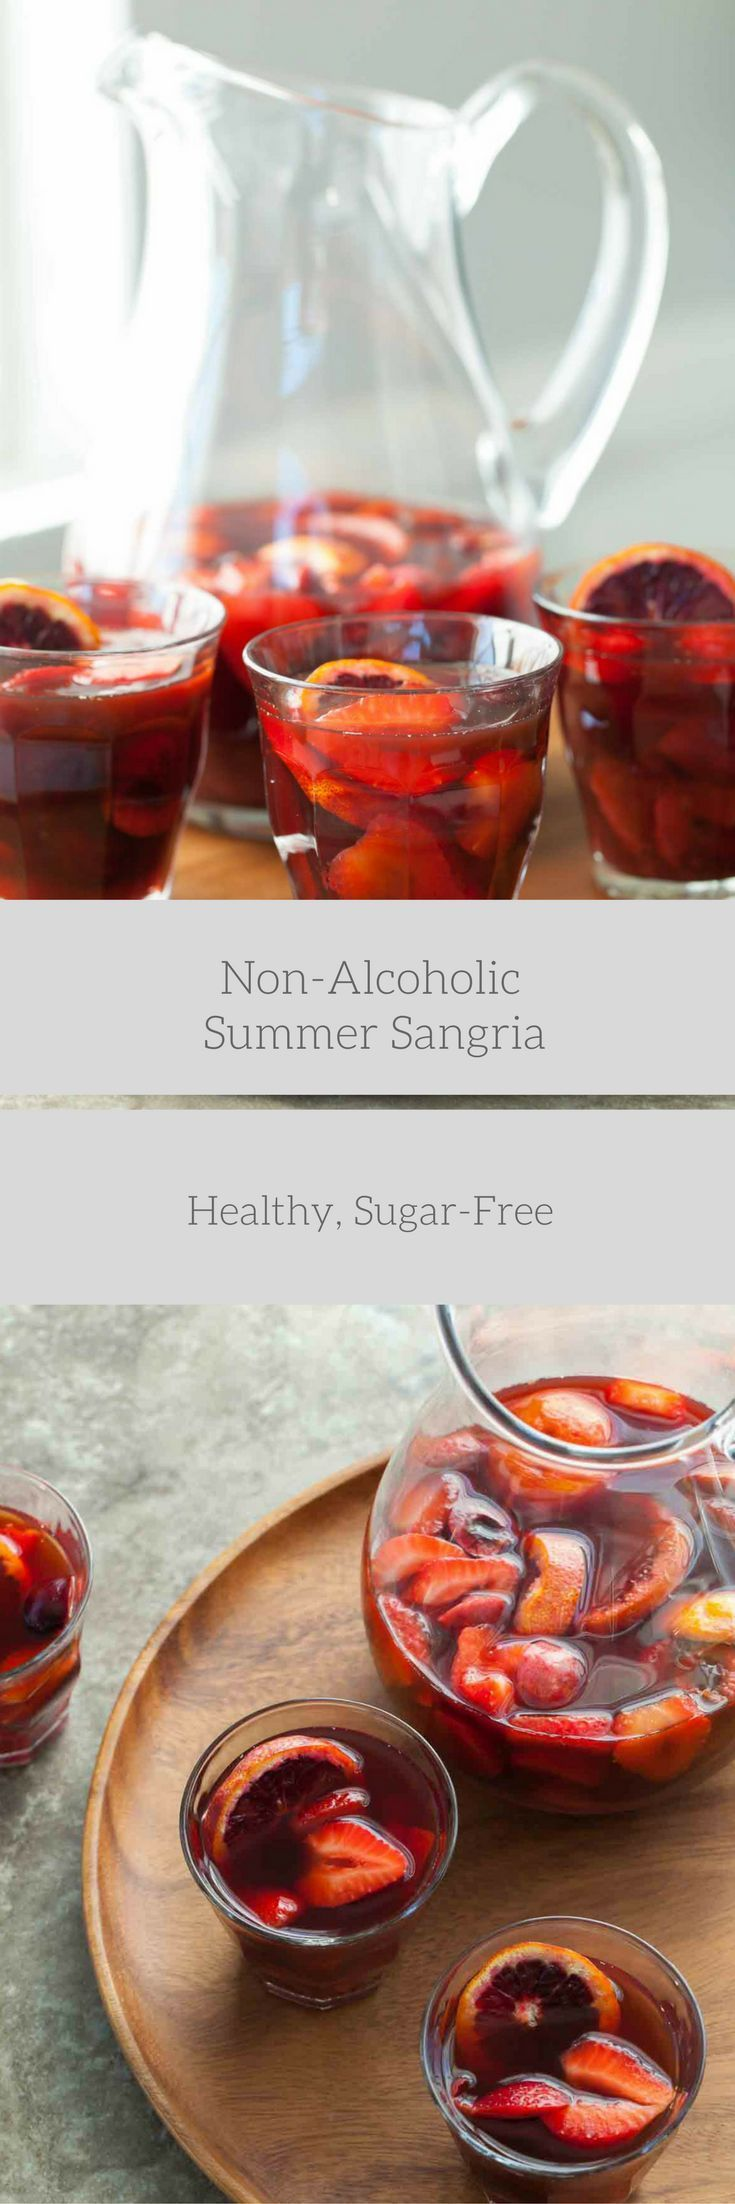 Non-Alcoholic Summer Sangria - This mock sangria filled with strawberries, cherries and plums is just as refreshing and crowd-pleasing as the original. | Gourmande In The Kitchen